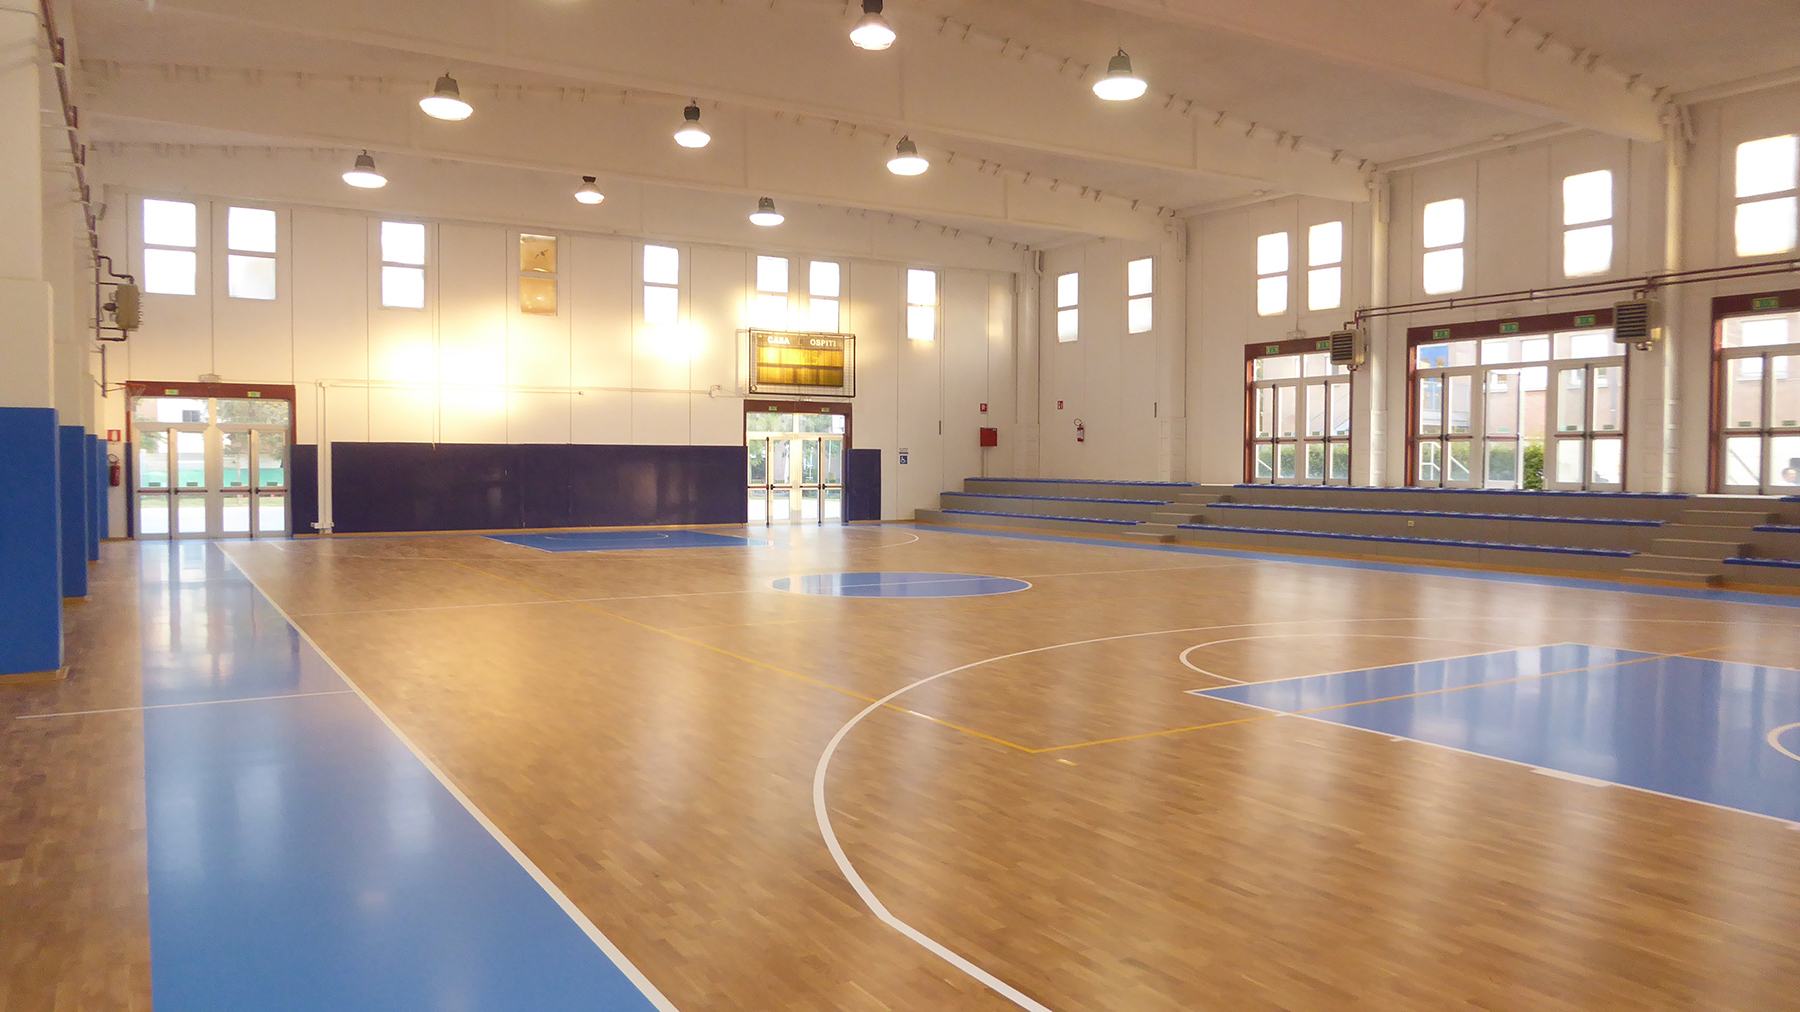 The sports facility ready to host the competitive activities again